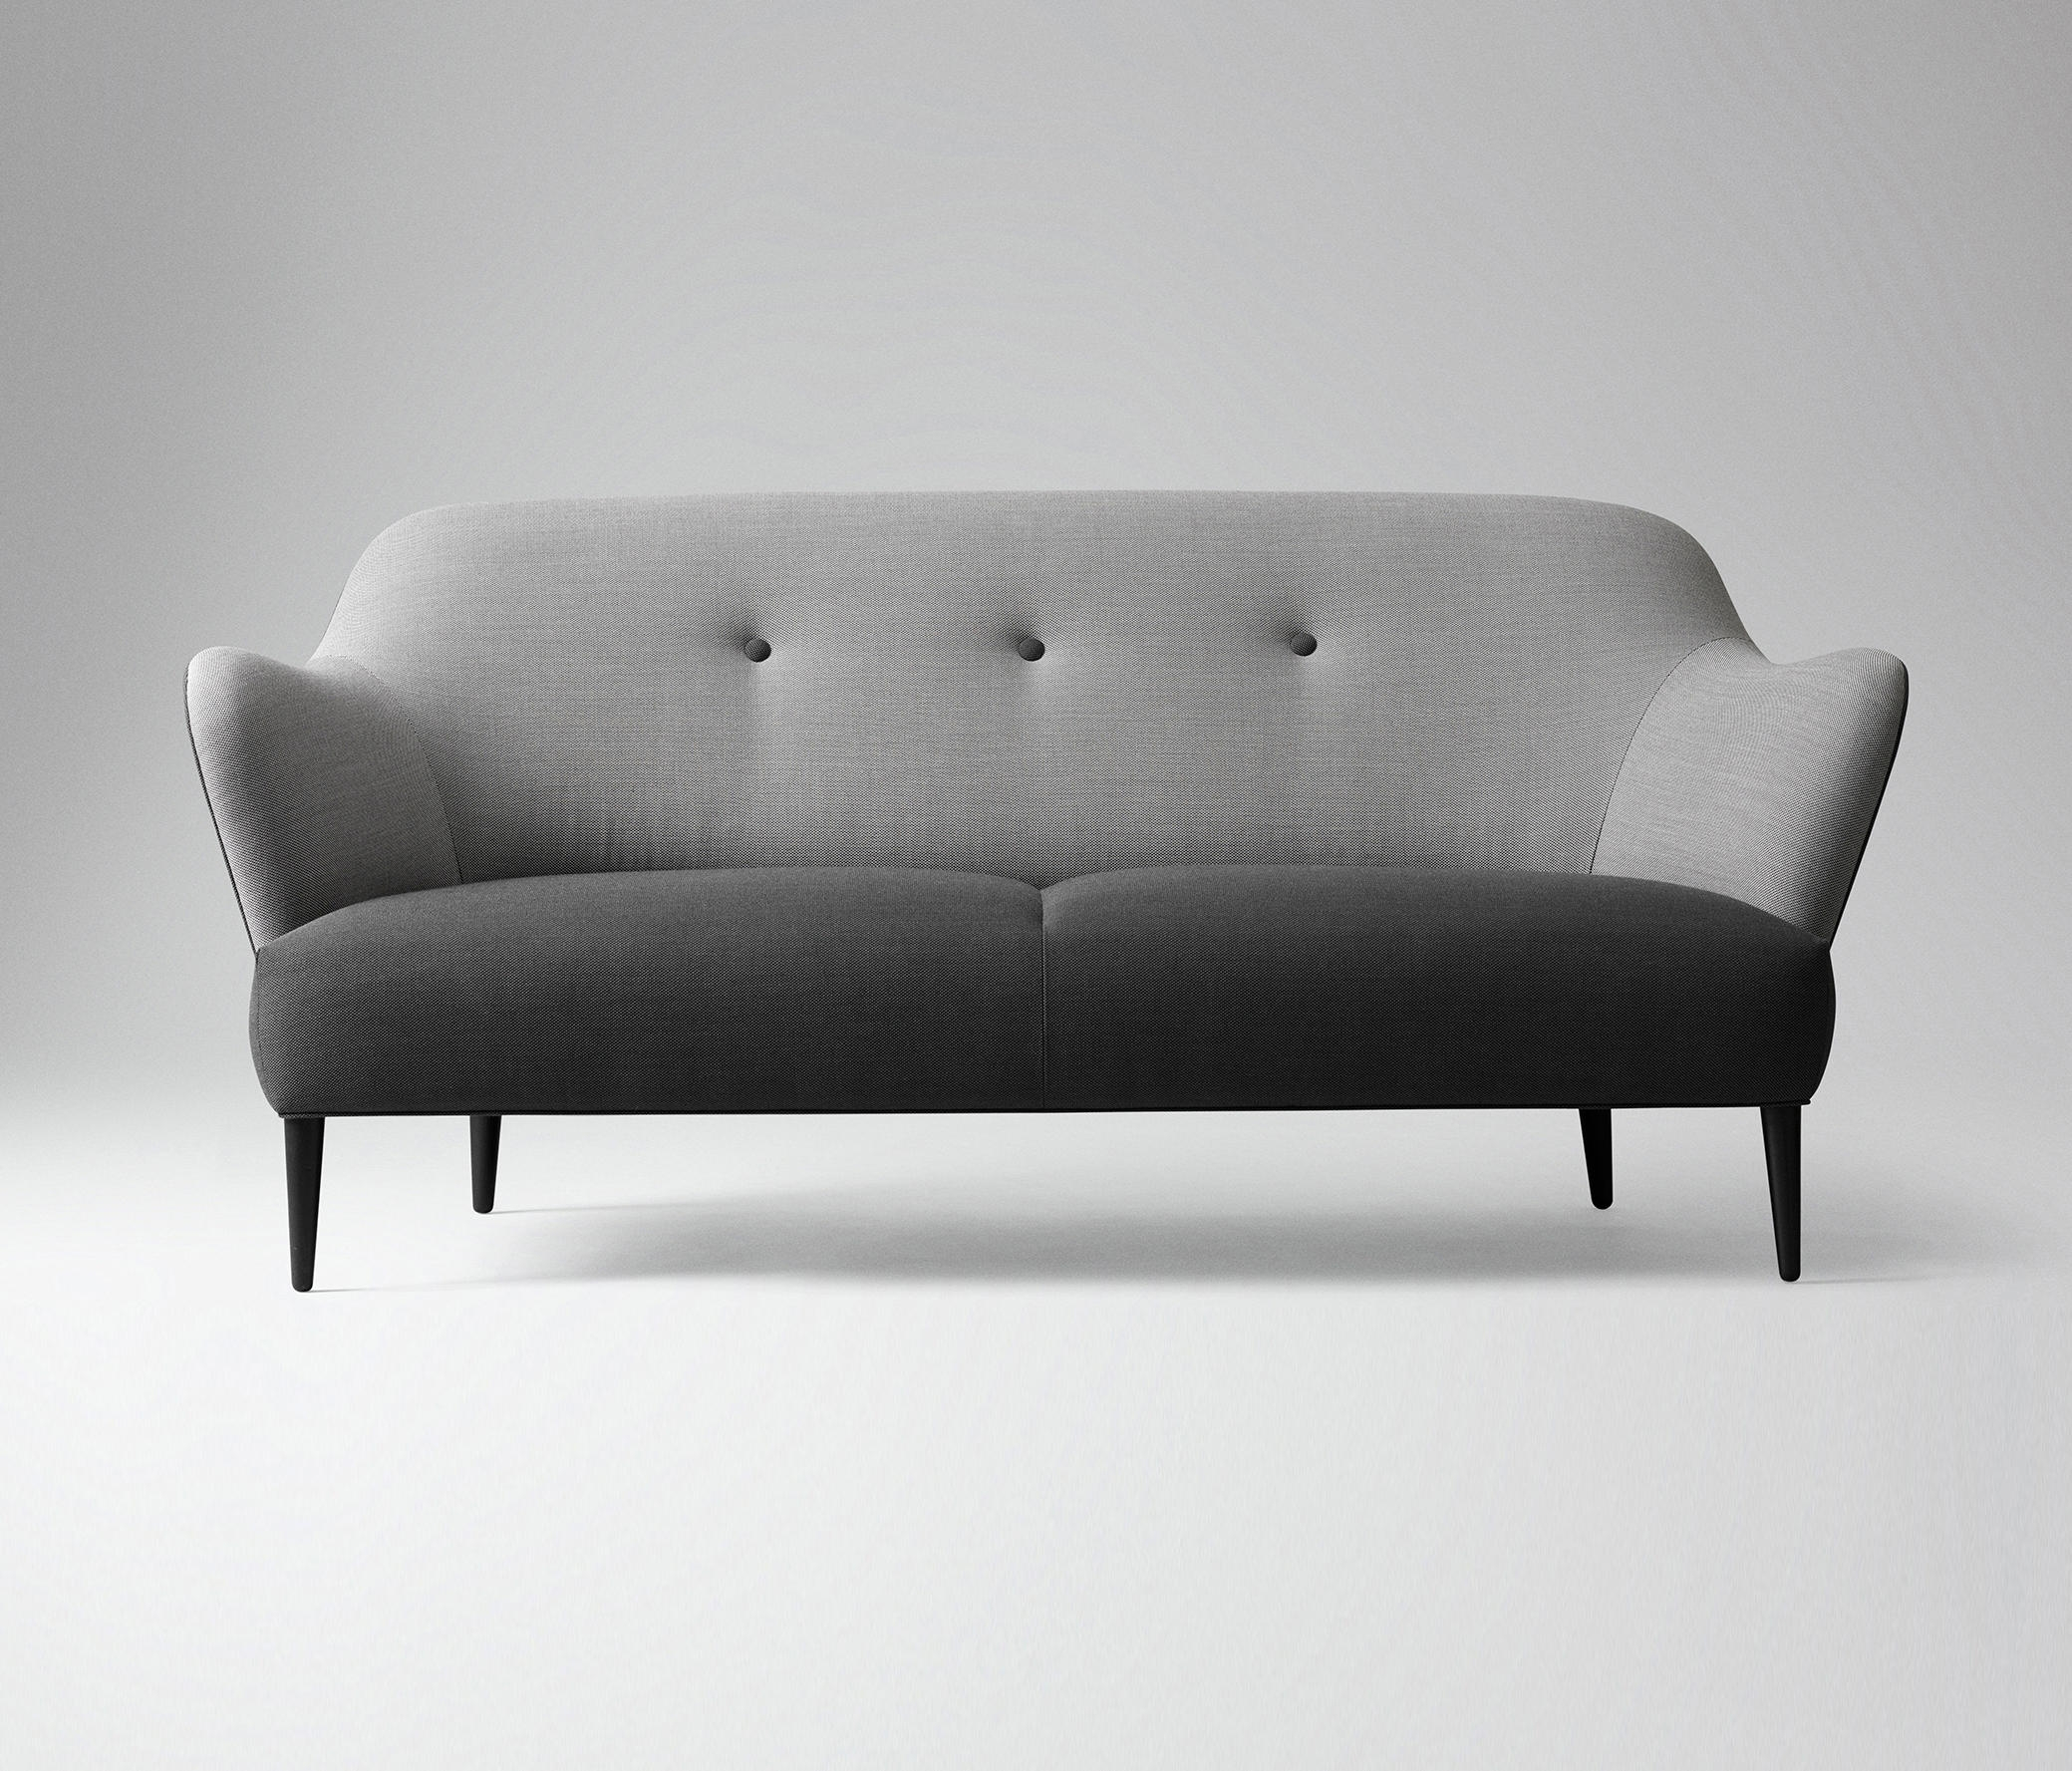 retro sofas von won design architonic